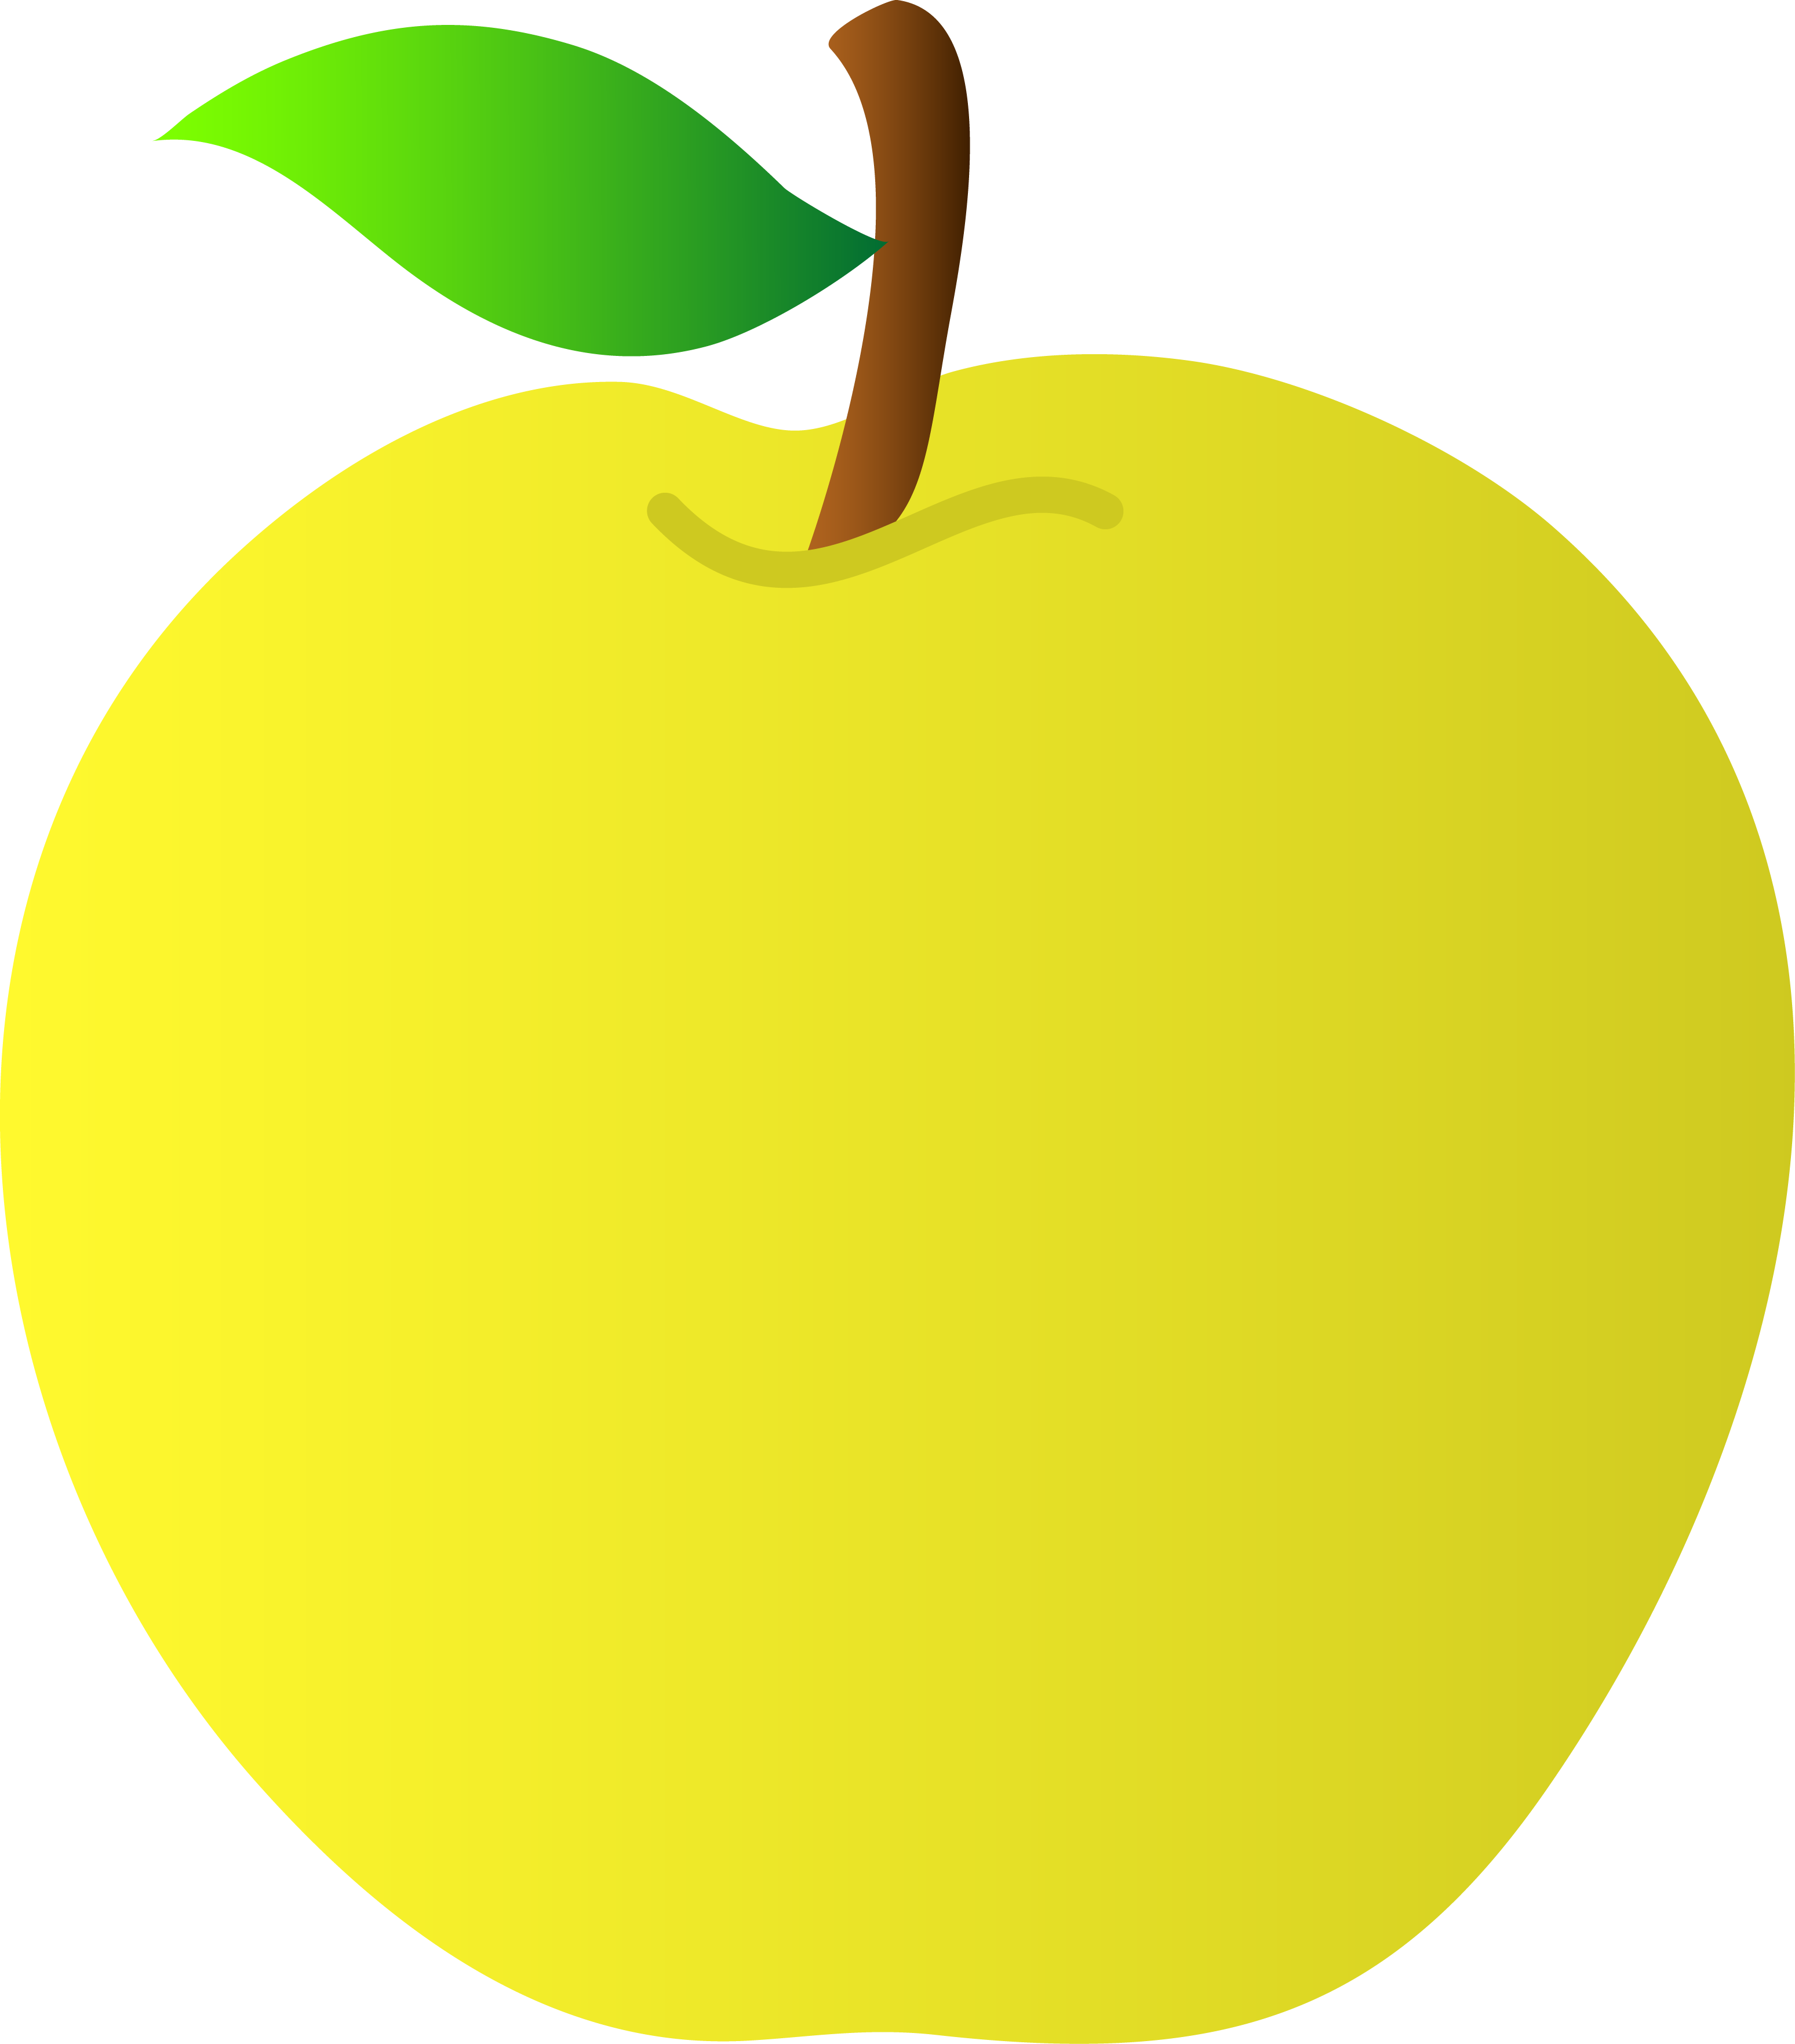 Apple clipart vector clip art library library Yellow Apple Vector Art - Free Clip Art clip art library library